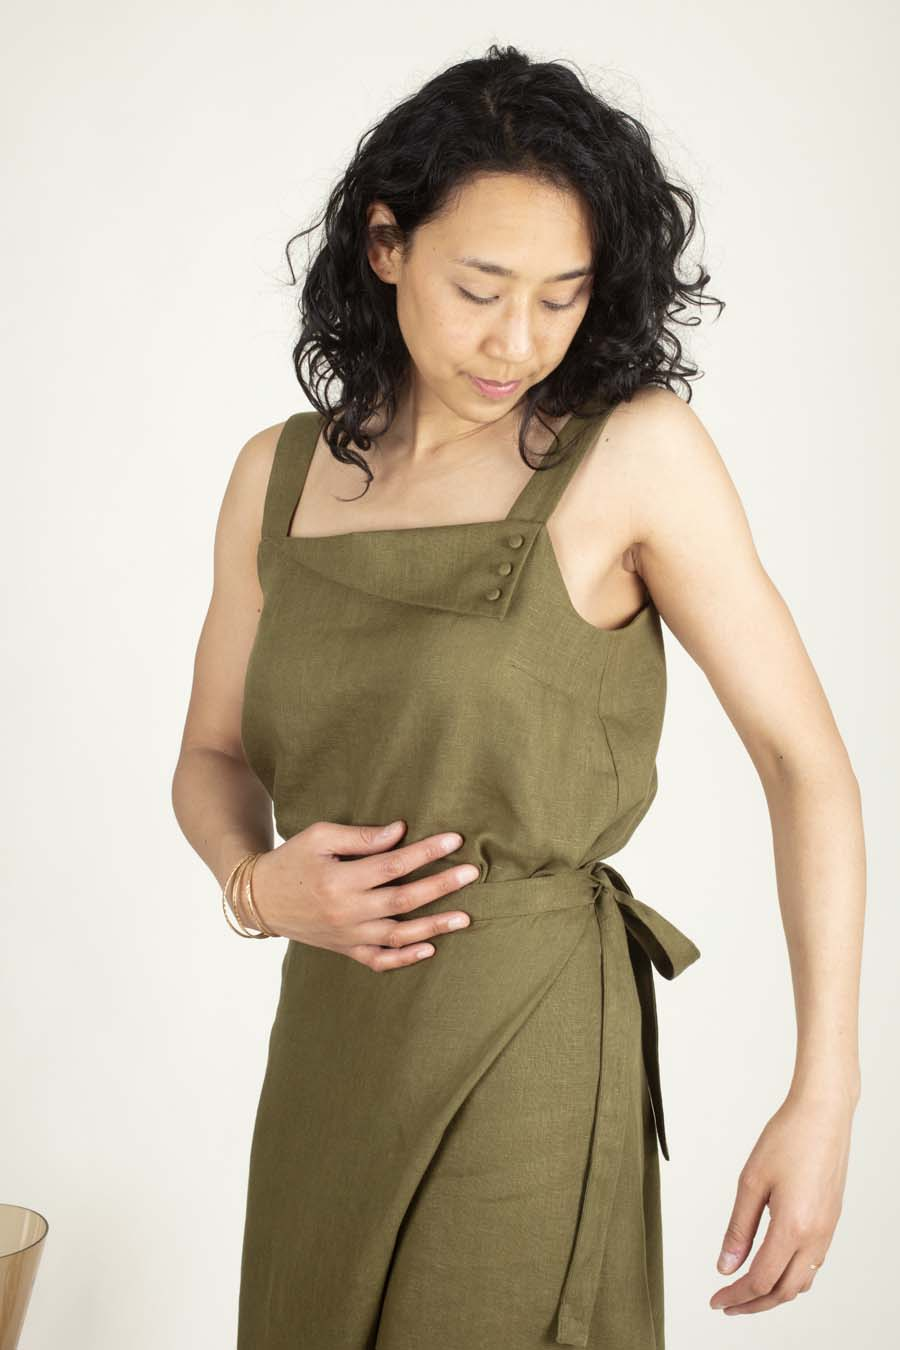 Brené top - a sewing pattern for beginners